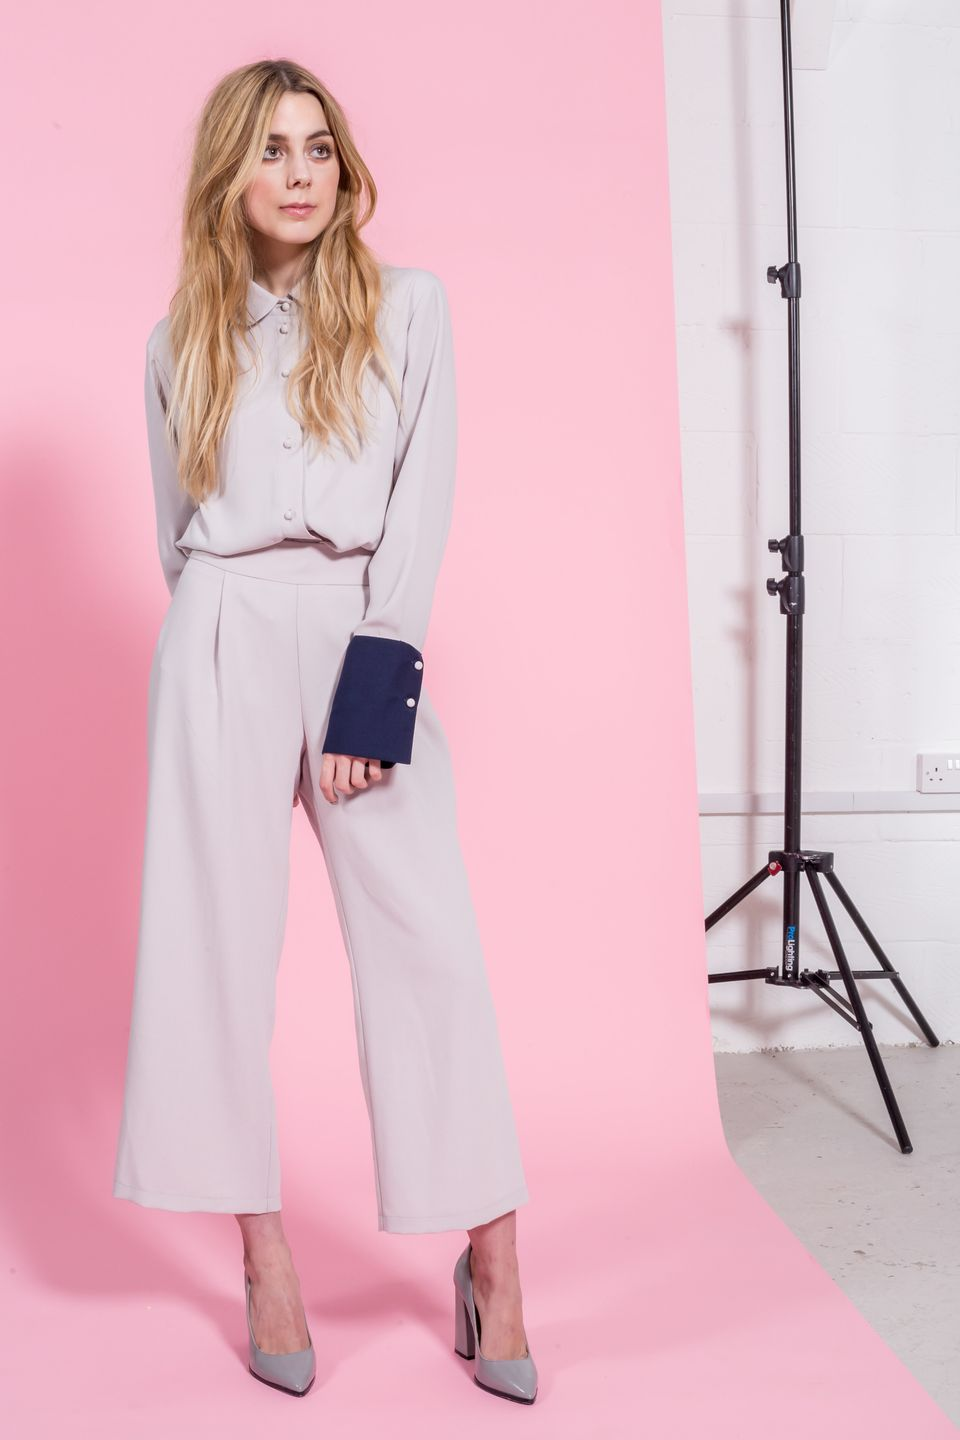 A jumpsuit from Alter London's latest